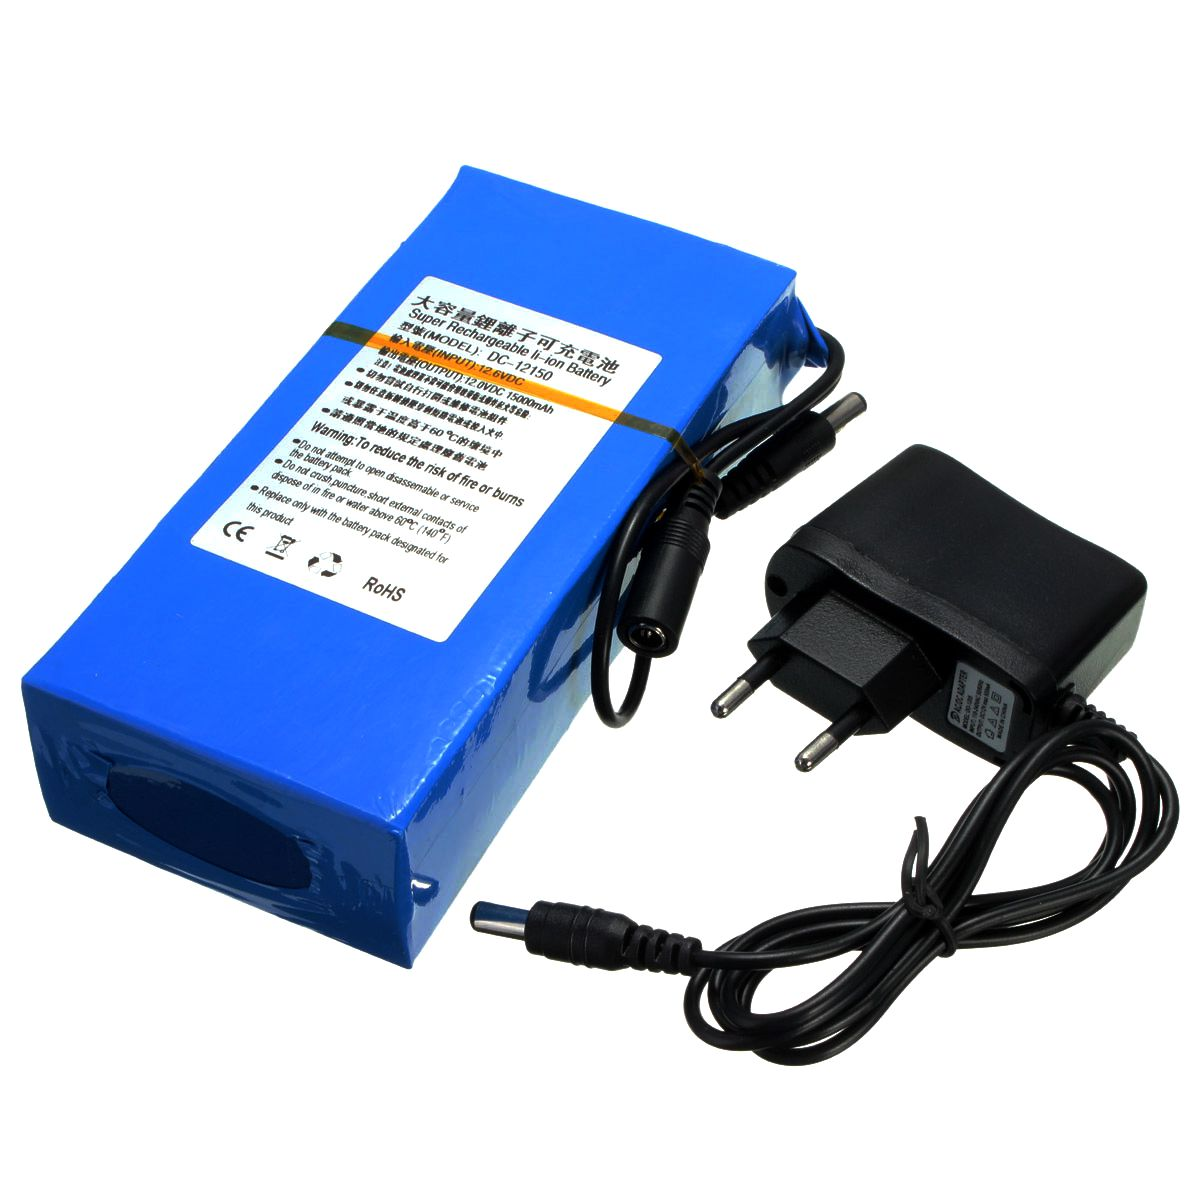 Lithium Ion Battery Pack DC 12V 15000mAh...